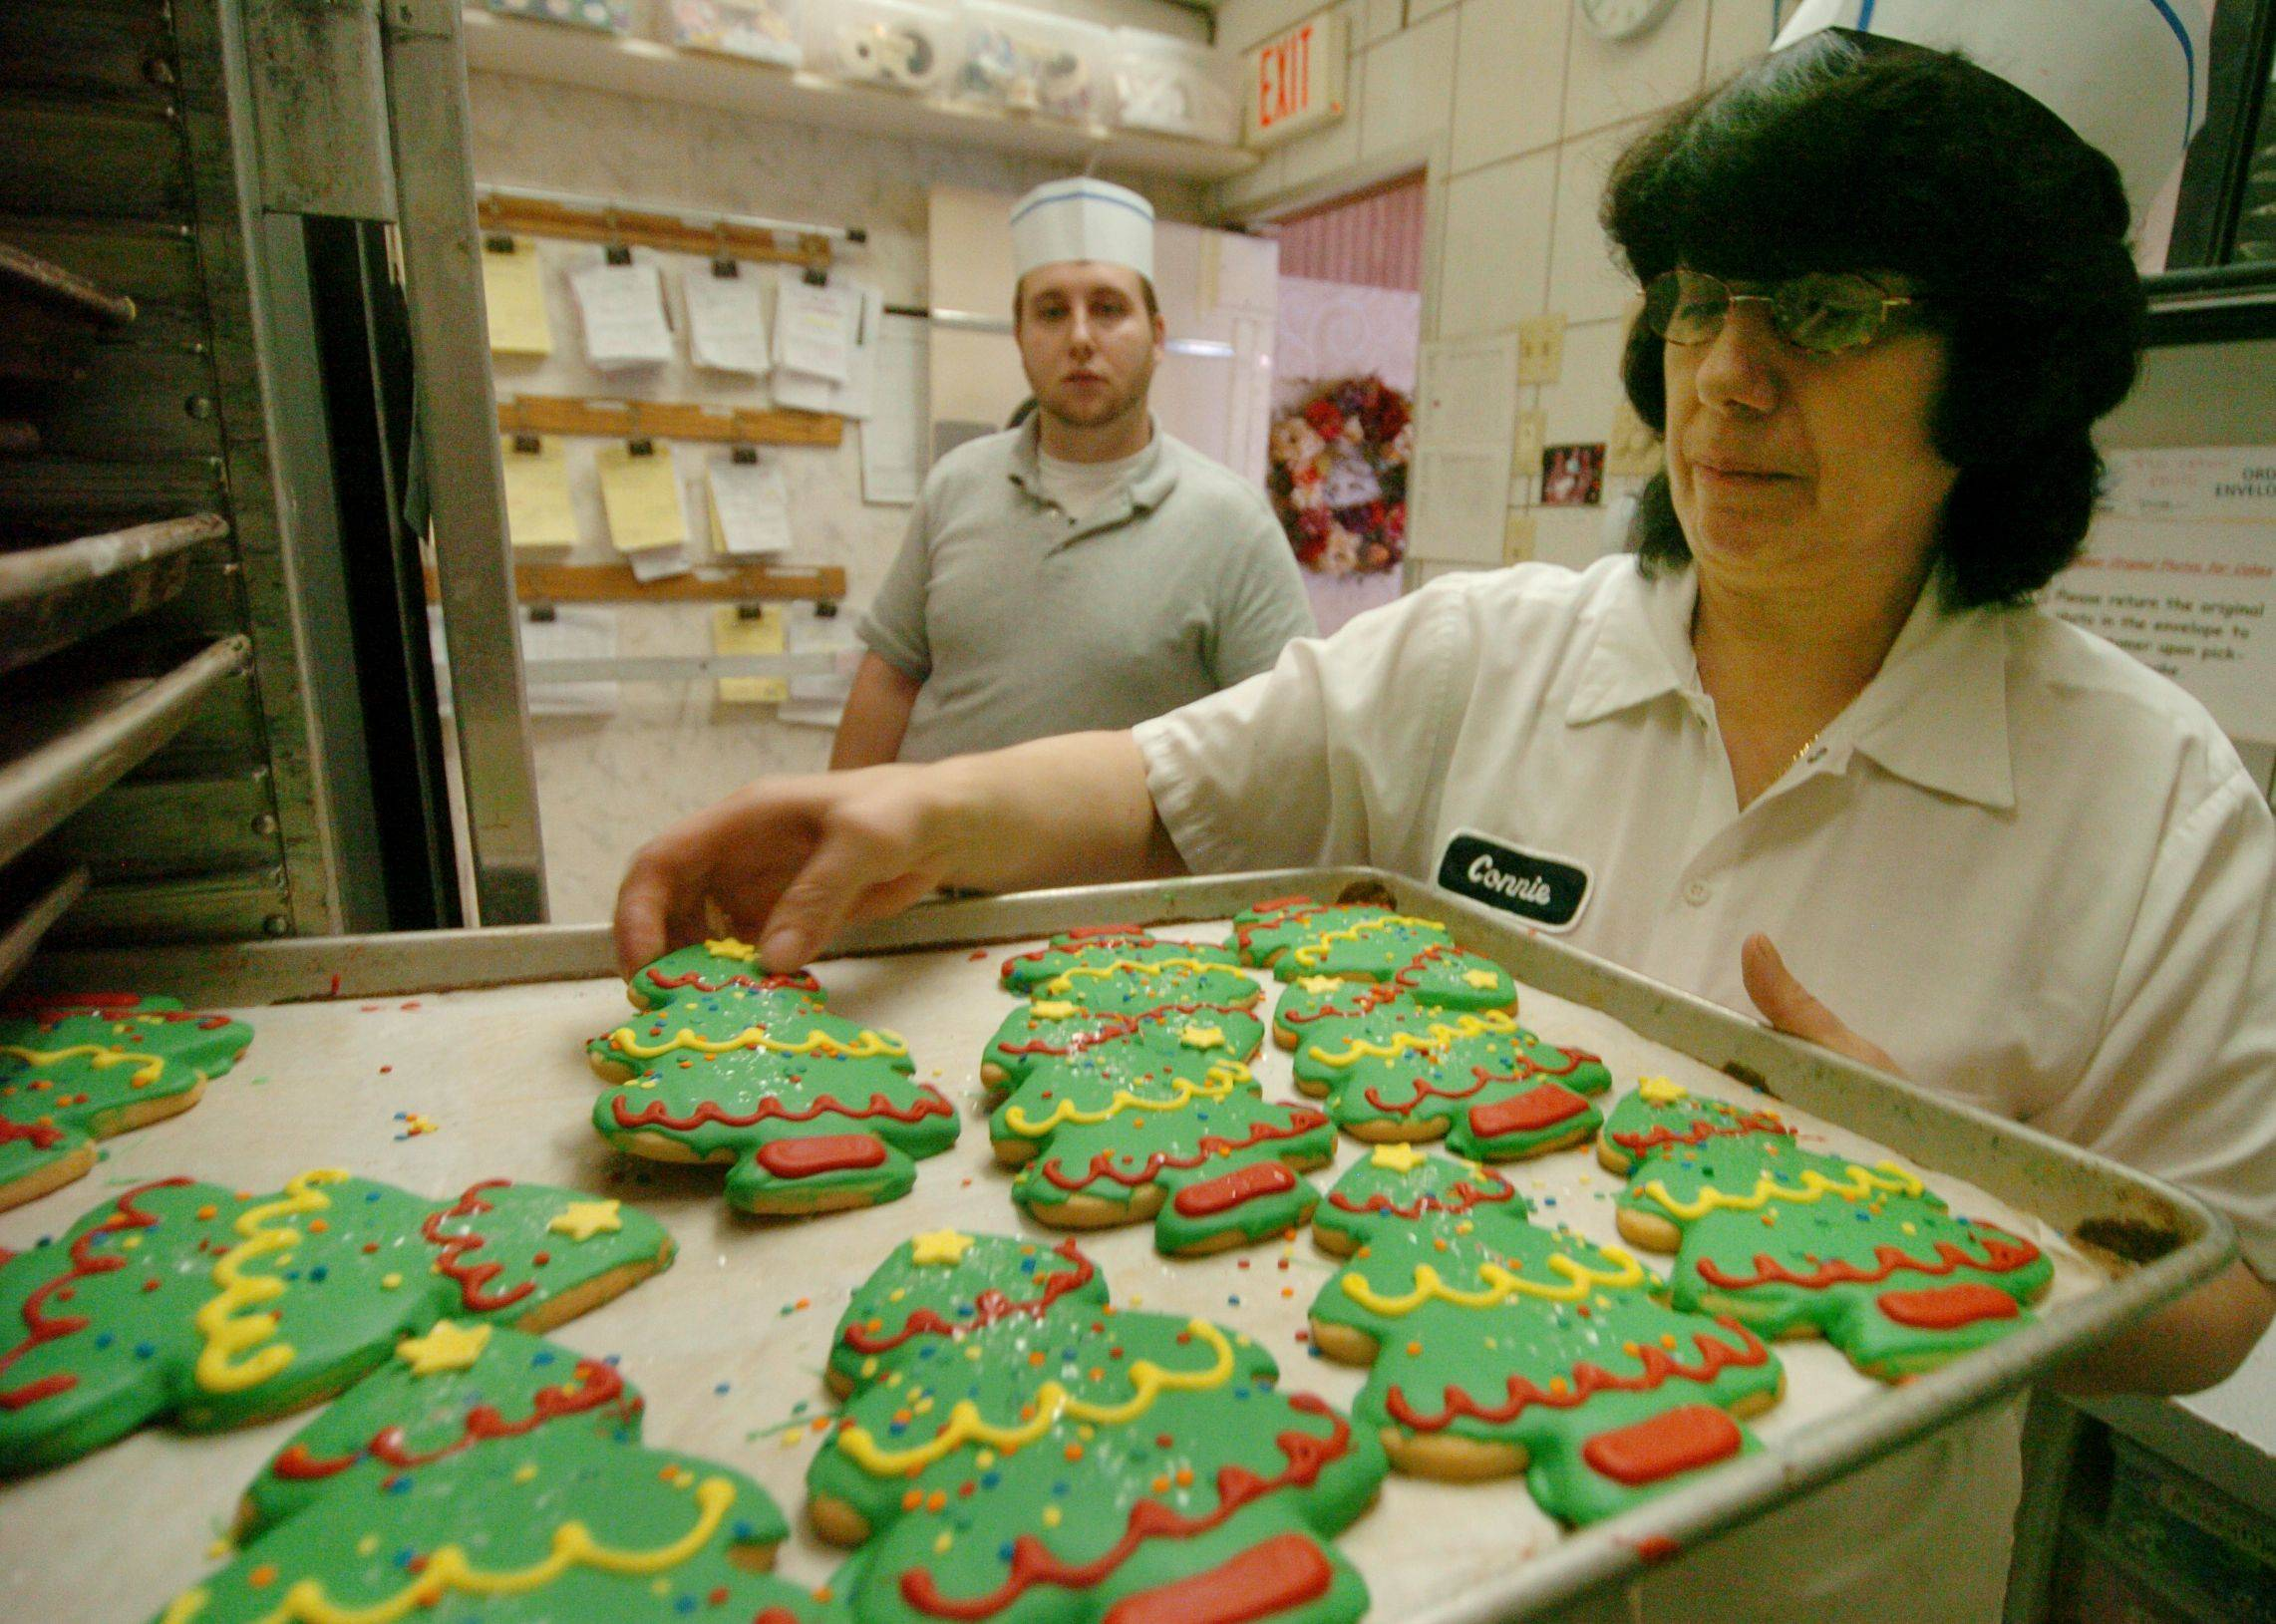 Connie Trakas, general manager of production and 28-year veteran at the bakery, pulls out a rack of Christmas sugar cookies ready to be packed and displayed in the store.